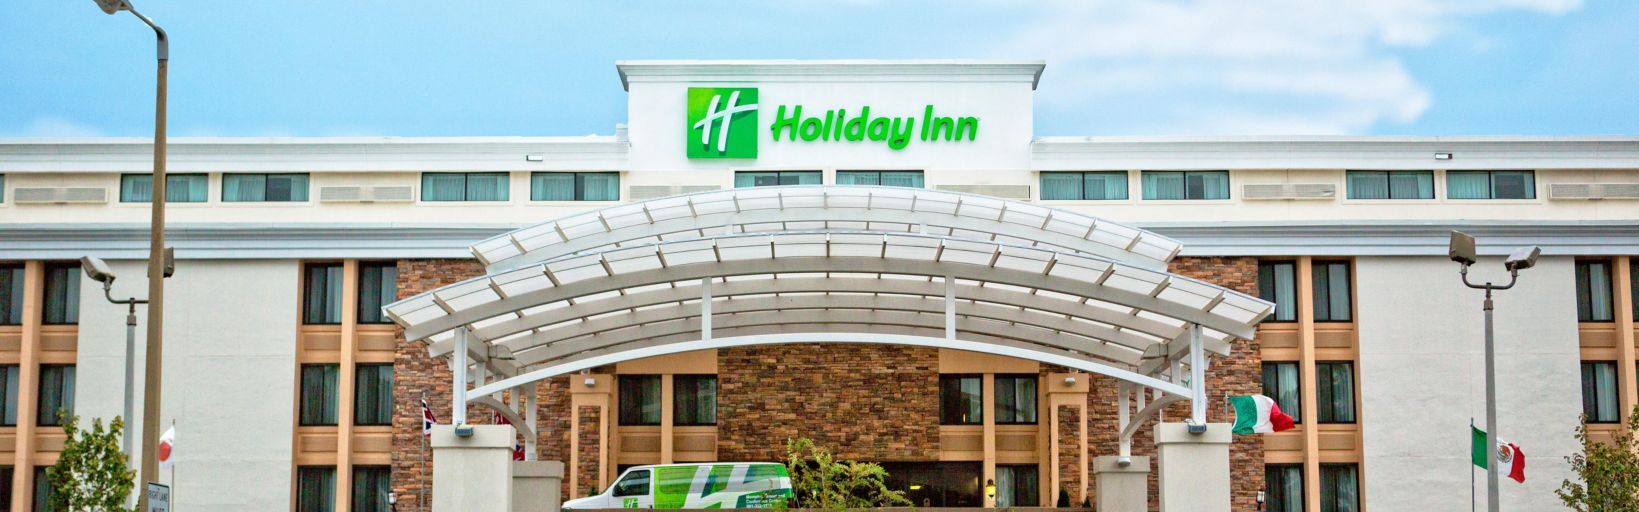 Our Friendly Staff Is Here For You Holiday Inn Memphis Airport